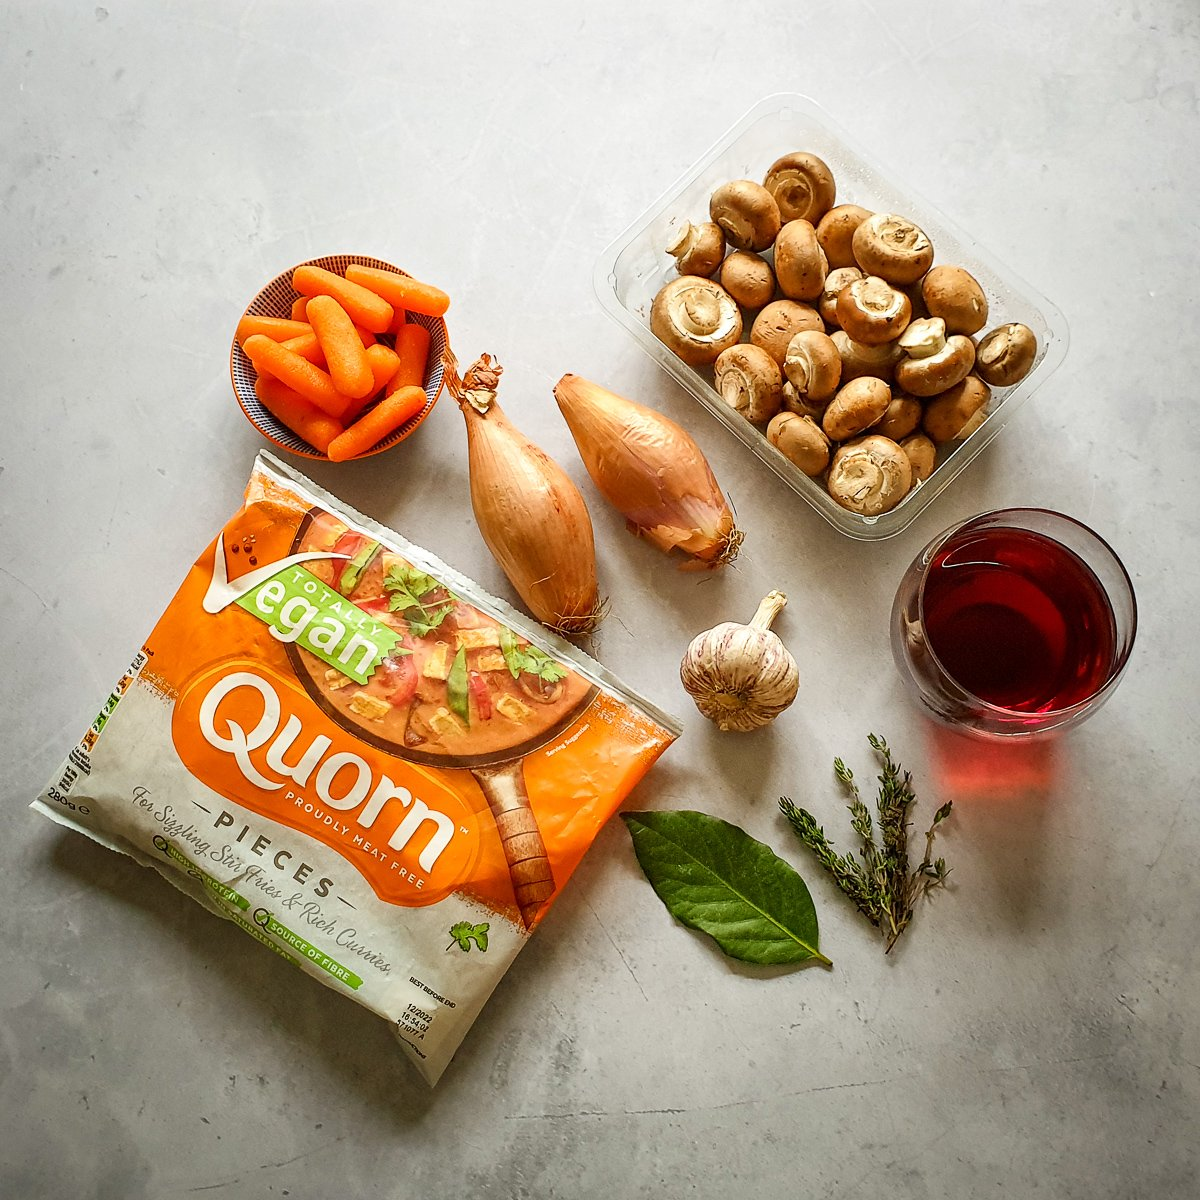 Ingredients for Quorn pie red wine sauce